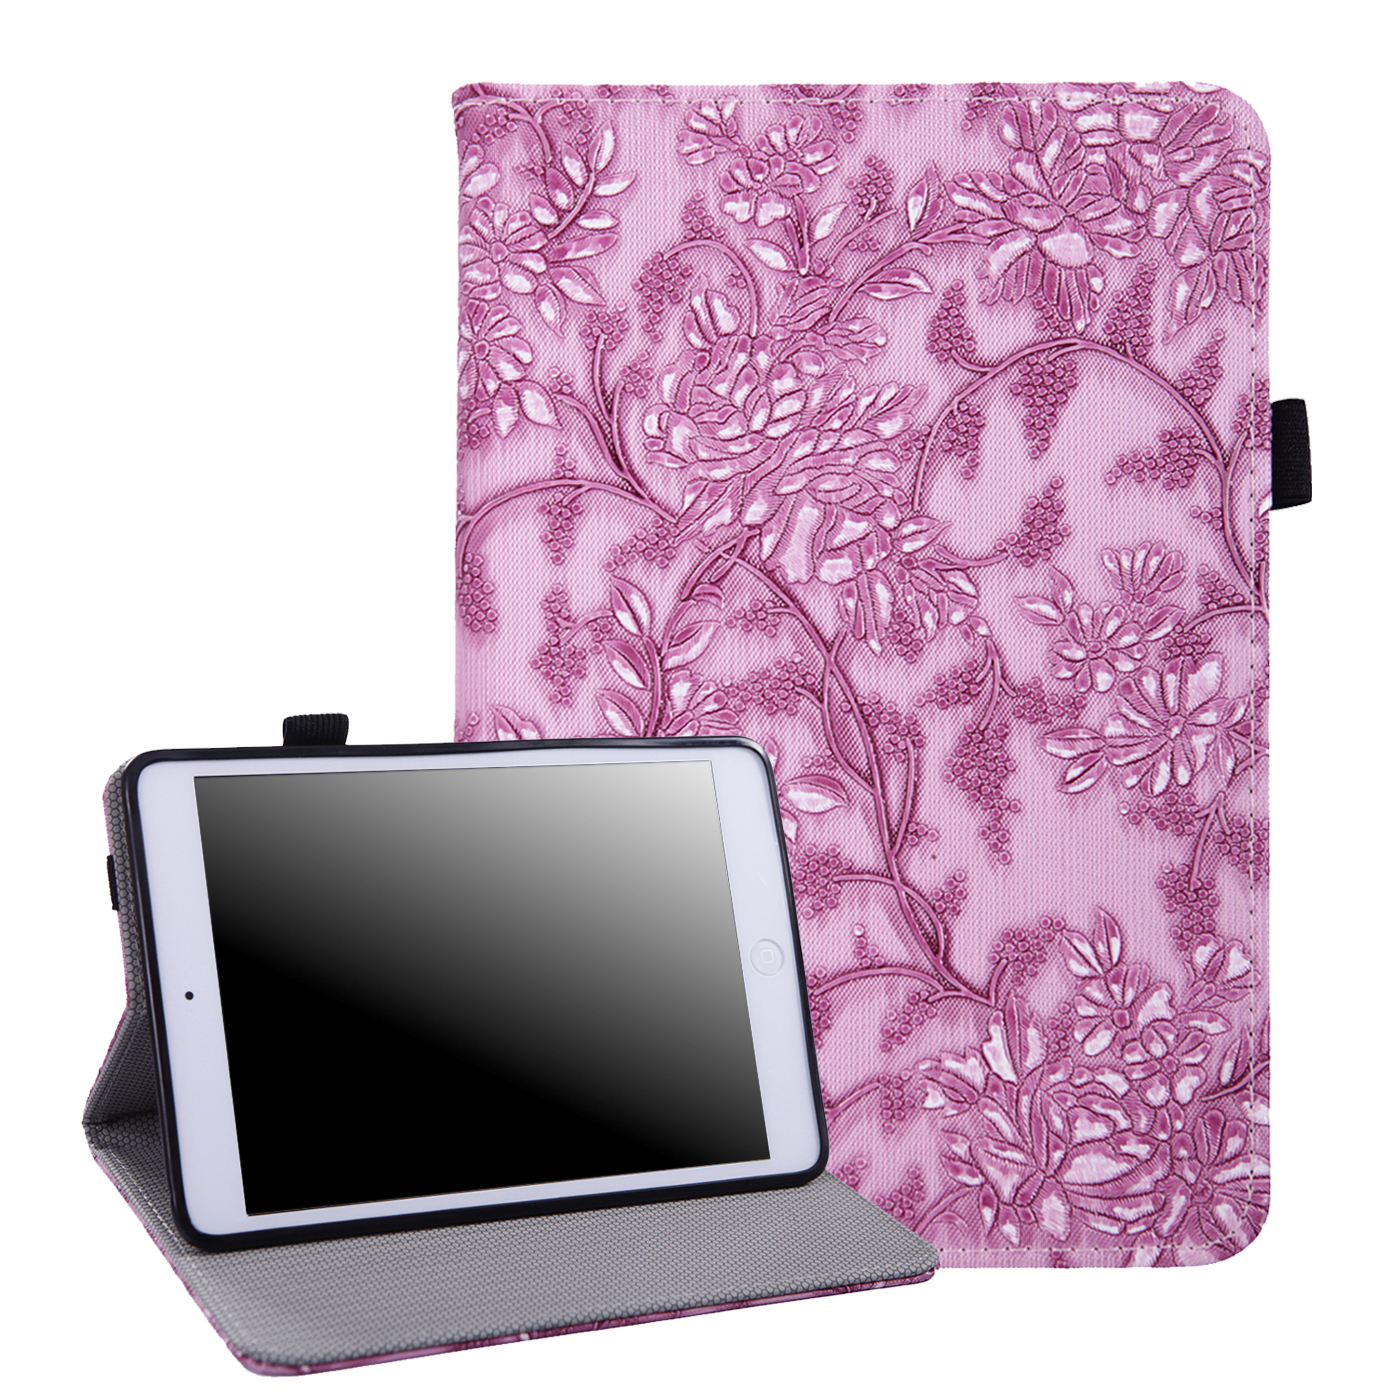 HDE iPad Mini 2 3 Case Slim Fit Leather Folio Cover Auto Sleep Wake Protective Flip Stand for Apple Mini iPad 1st 2nd 3rd Generation Retina (Purple Embossed Flower)